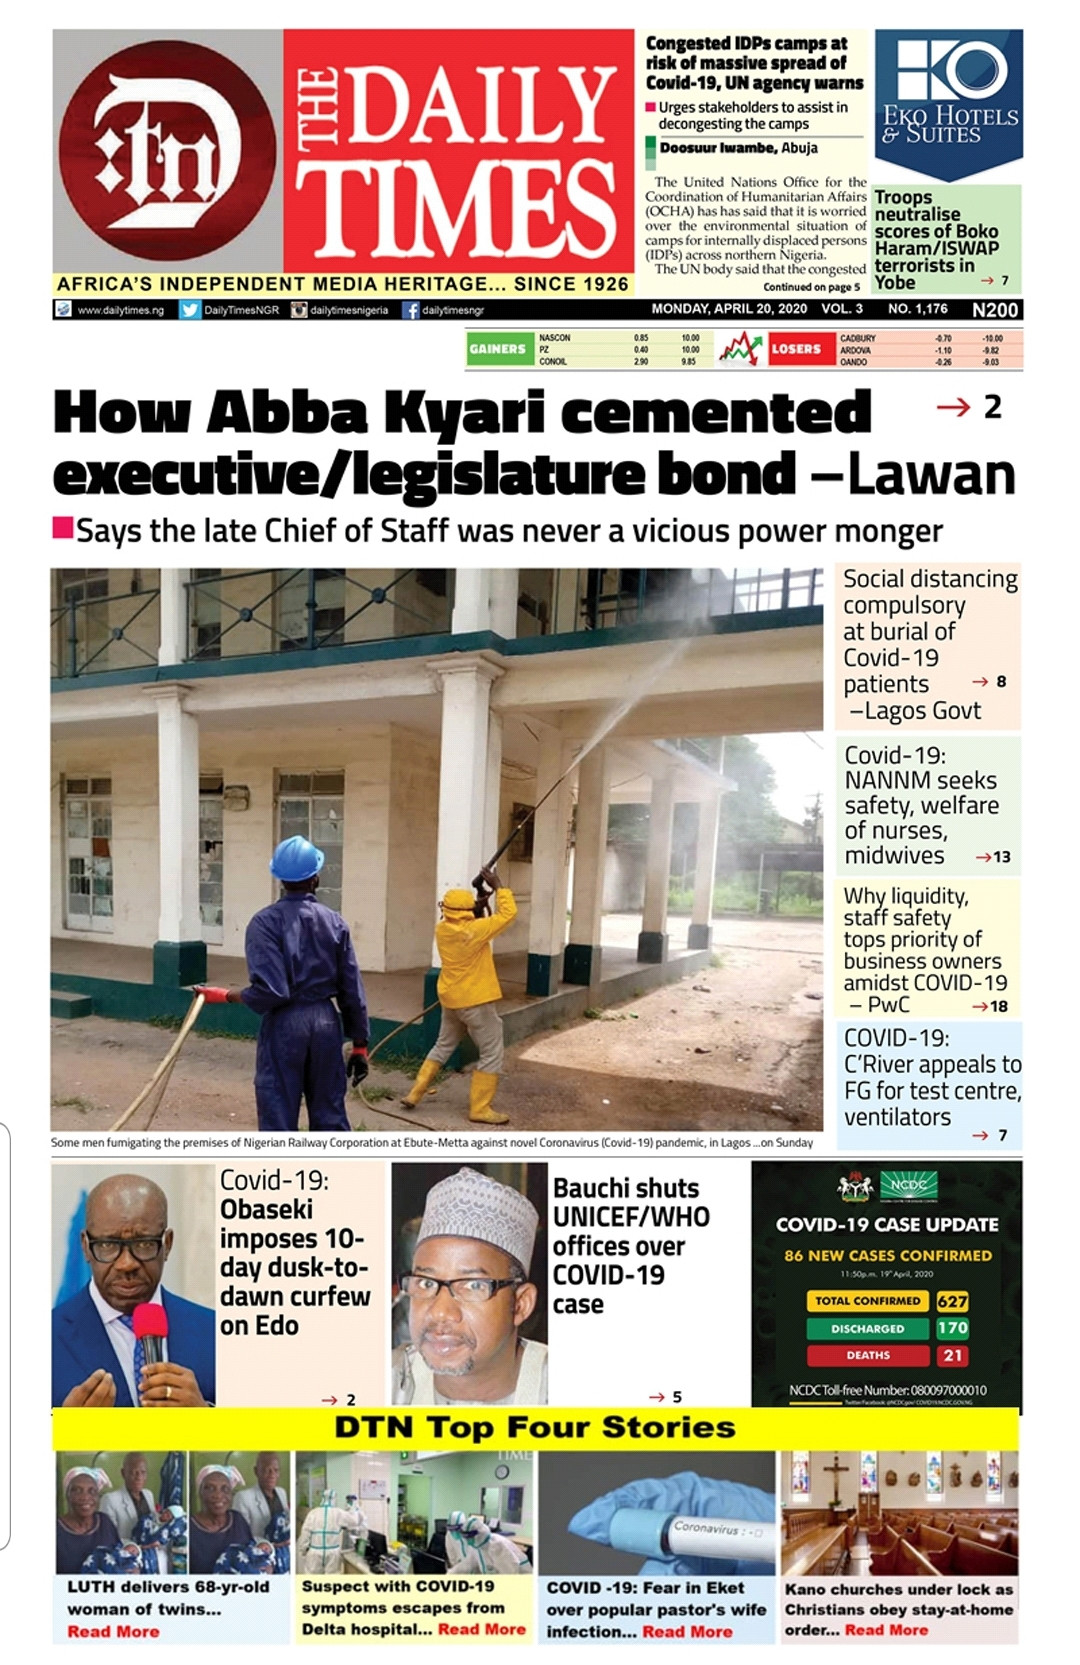 Daily Times Nigeria (DTN) Top 4 Stories